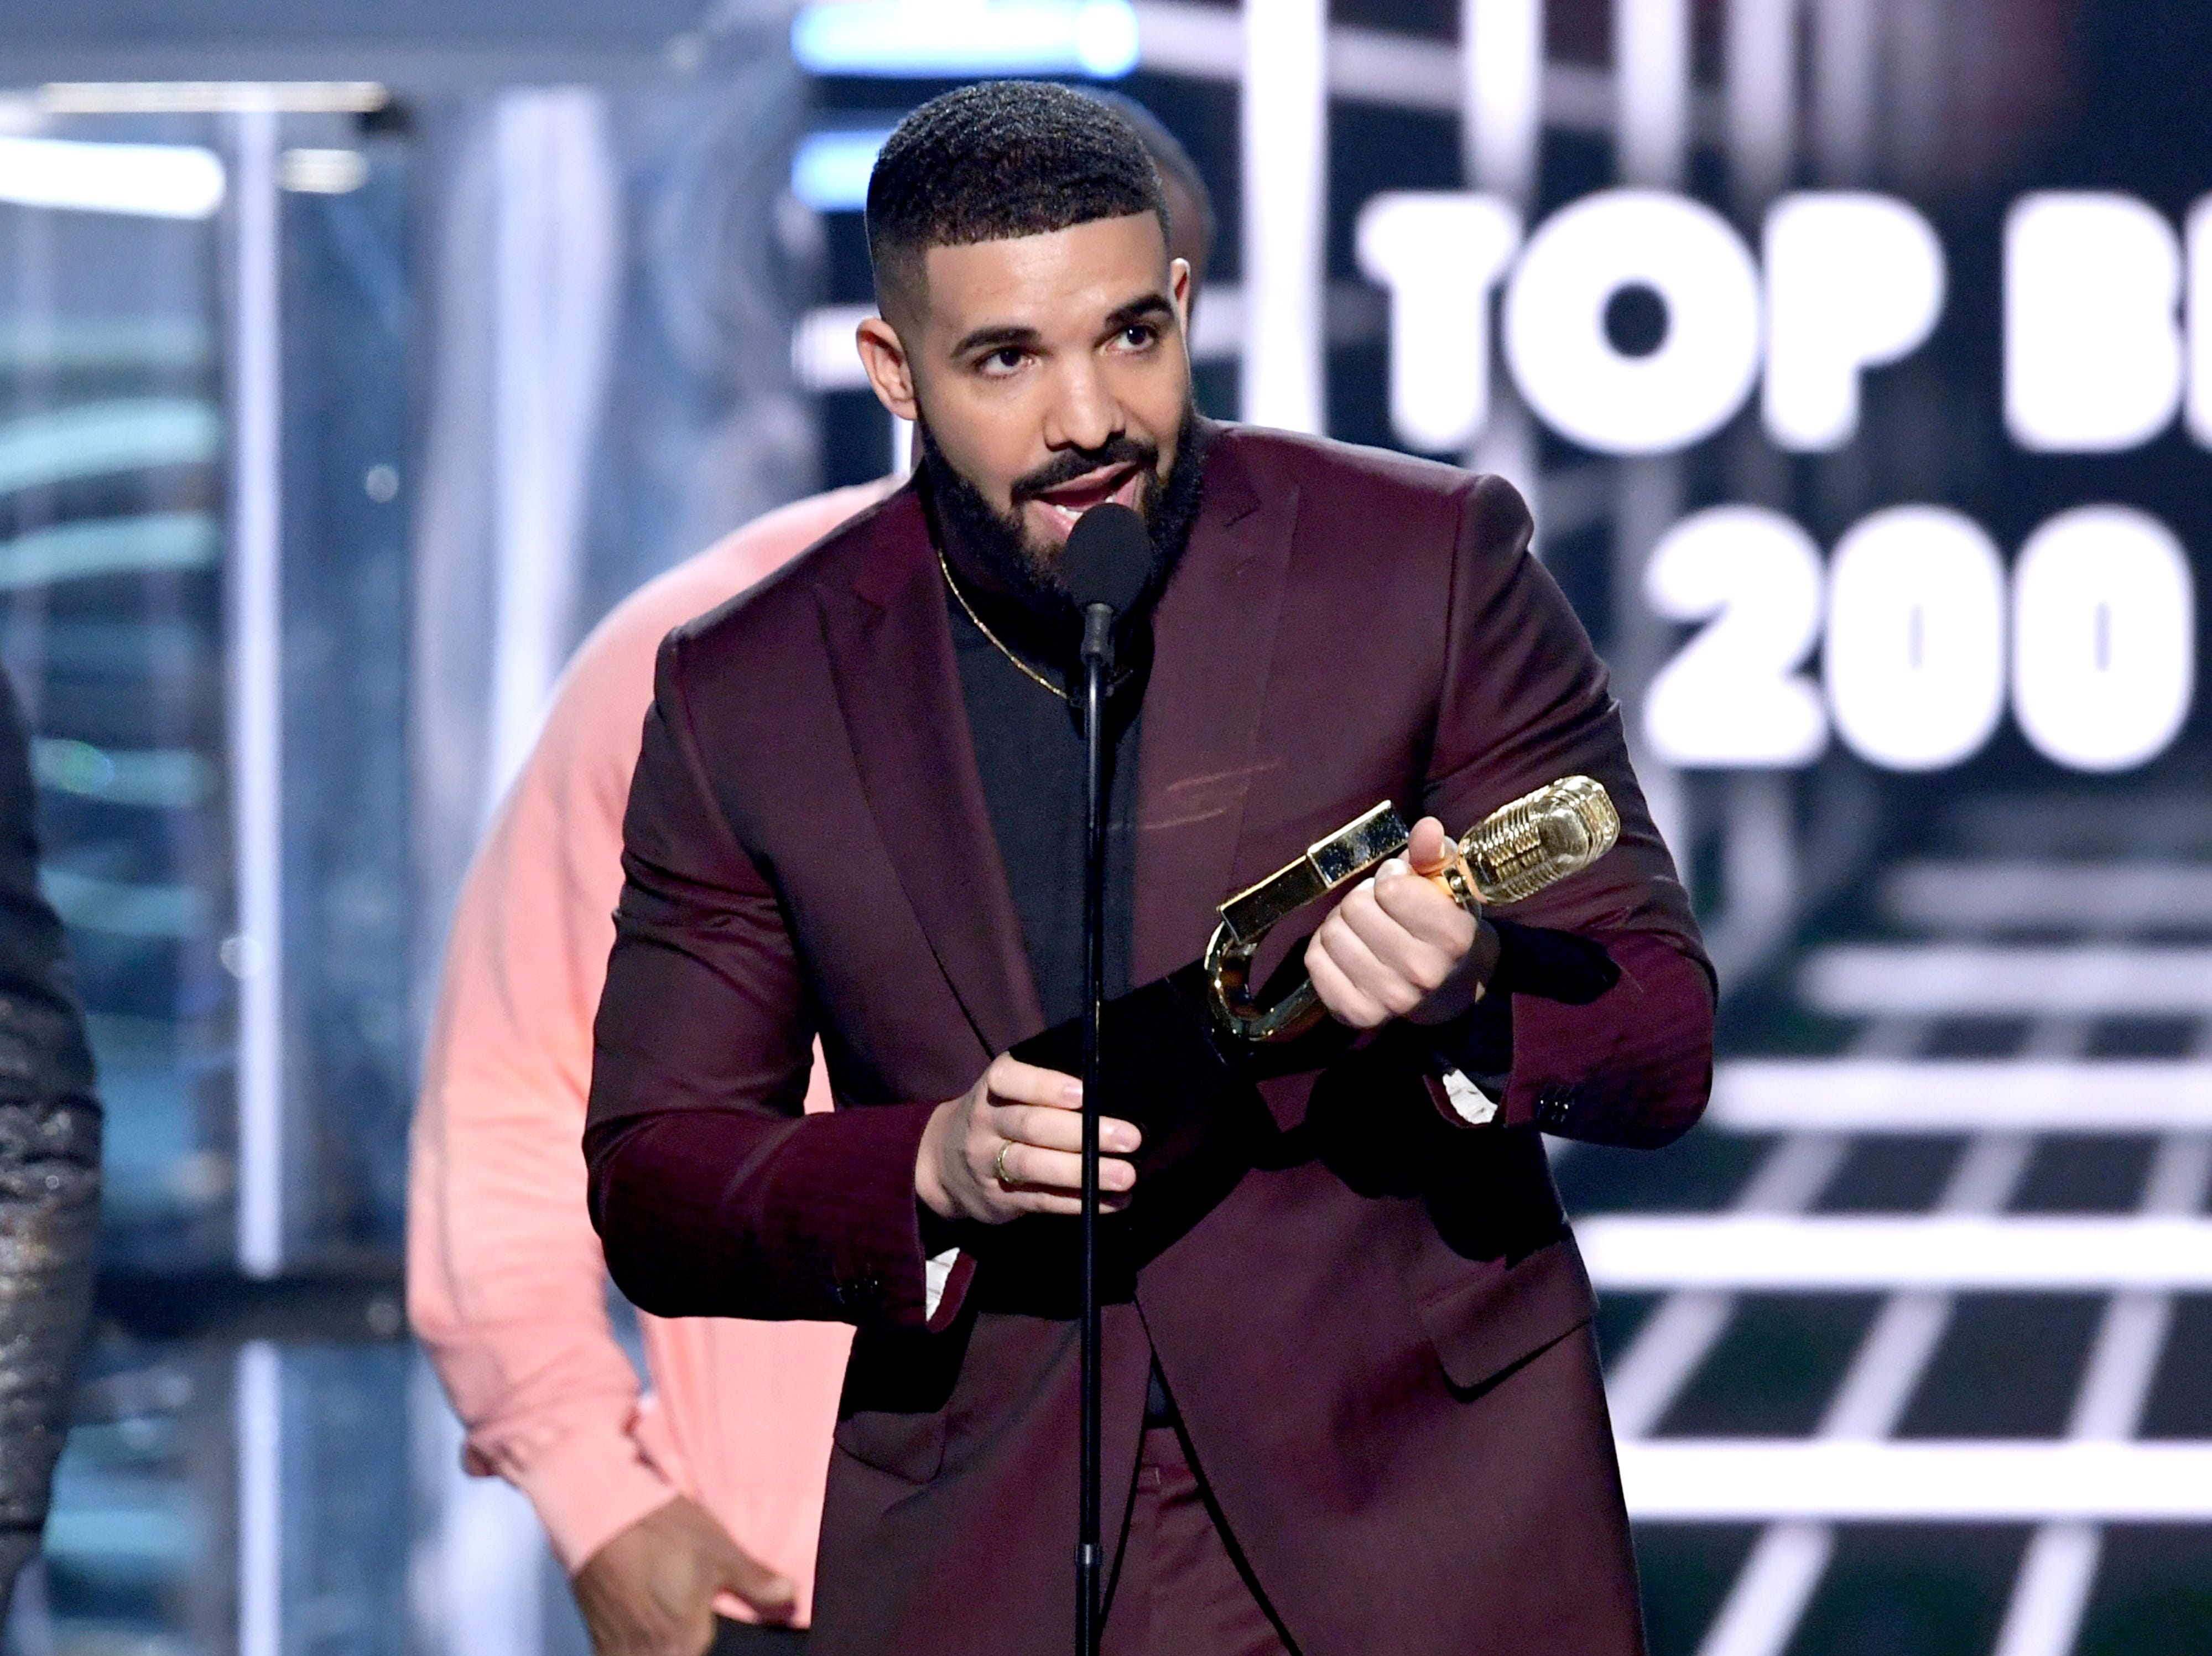 Drake accepts the Top Billboard 200 Album award for 'Scorpion' onstage during the 2019 Billboard Music Awards at MGM Grand Garden Arena on May 01, 2019 in Las Vegas, Nevada.